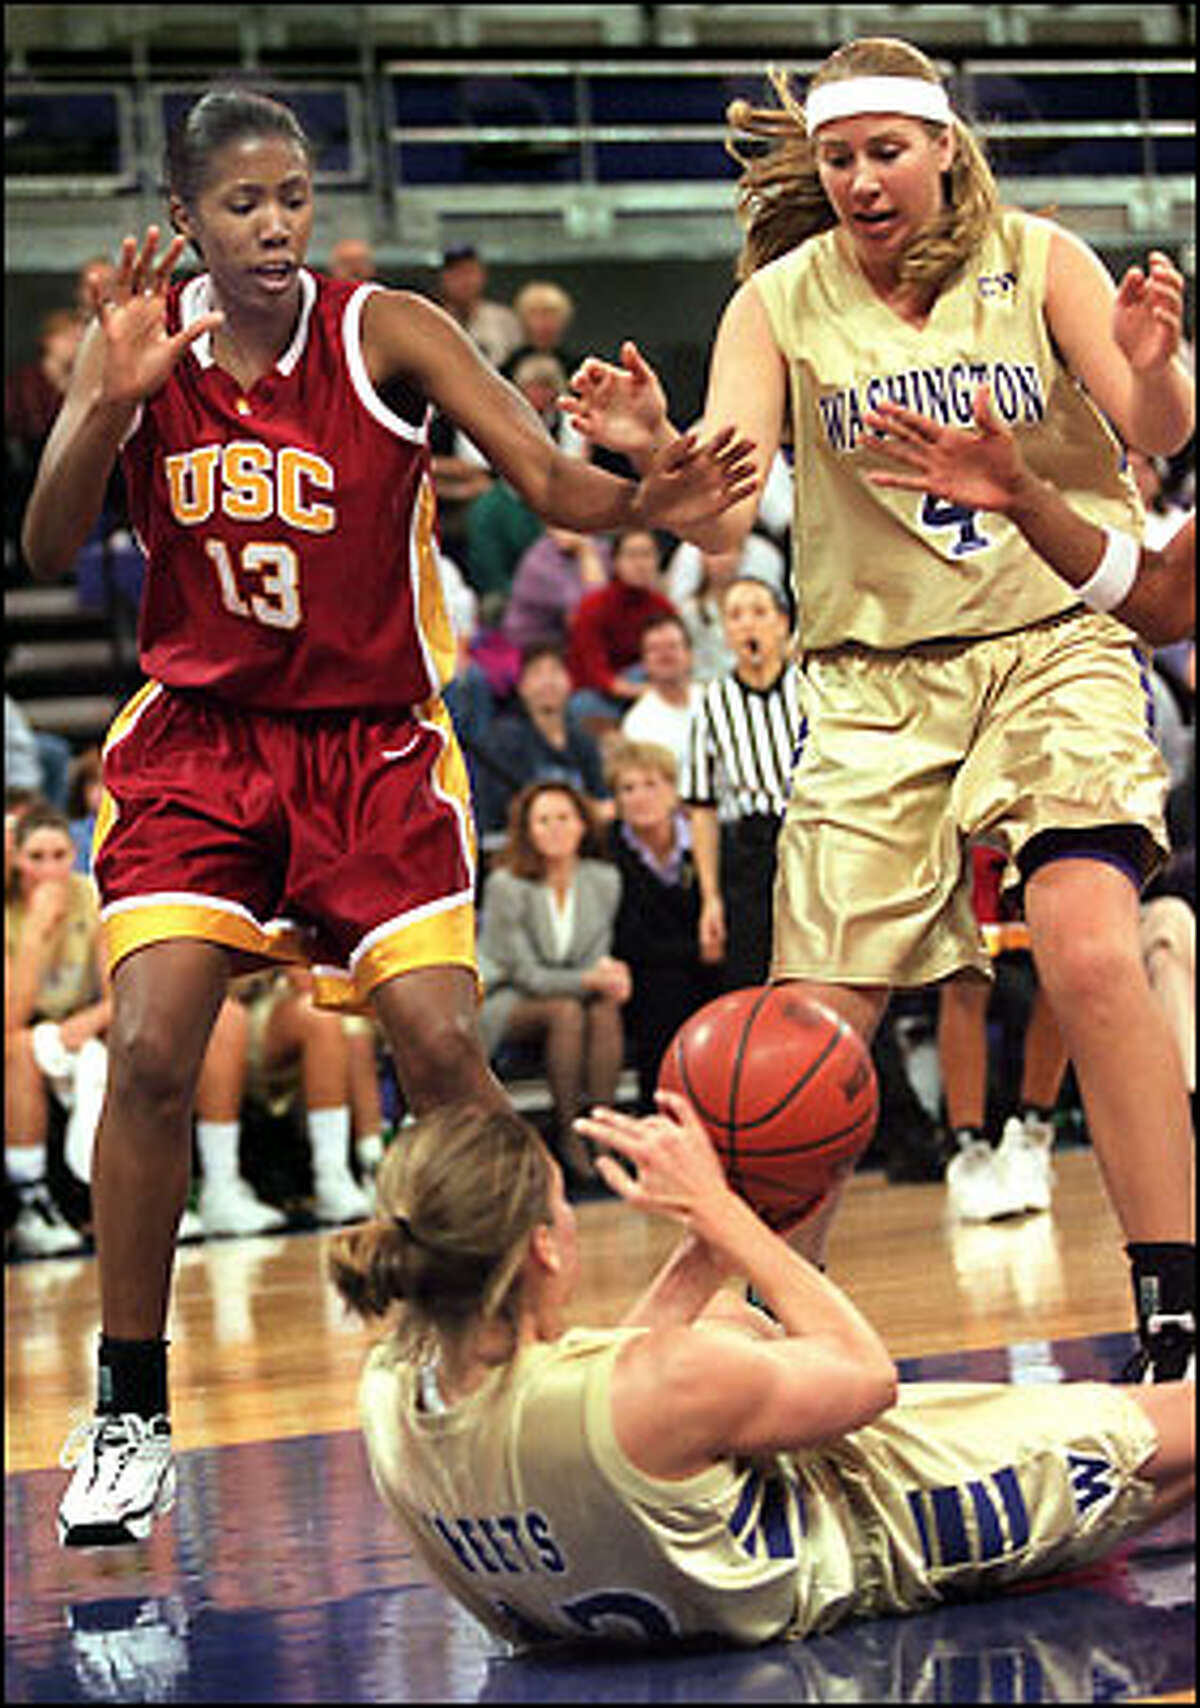 LeAnn Sheets looks for a place to pass the ball from a prone position as USC's Denise Woods and UW's Melissa Erickson await the outcome.